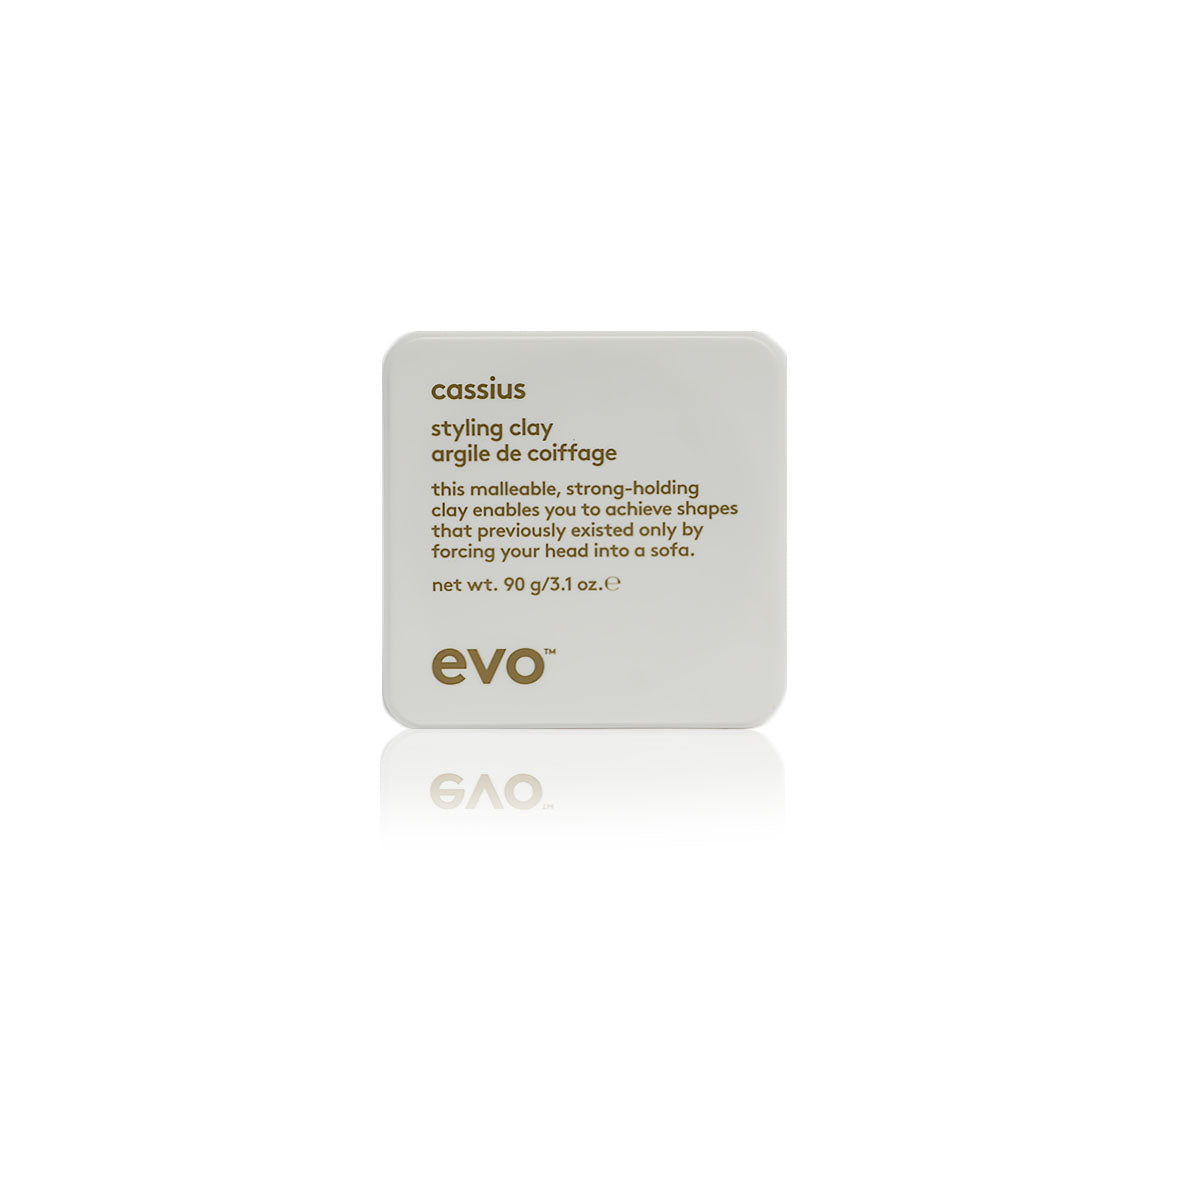 Evo cassius styling clay, for thick coarse hair,creates flexible hold 90g /3 .1oz - Case of 3 bottles (New)